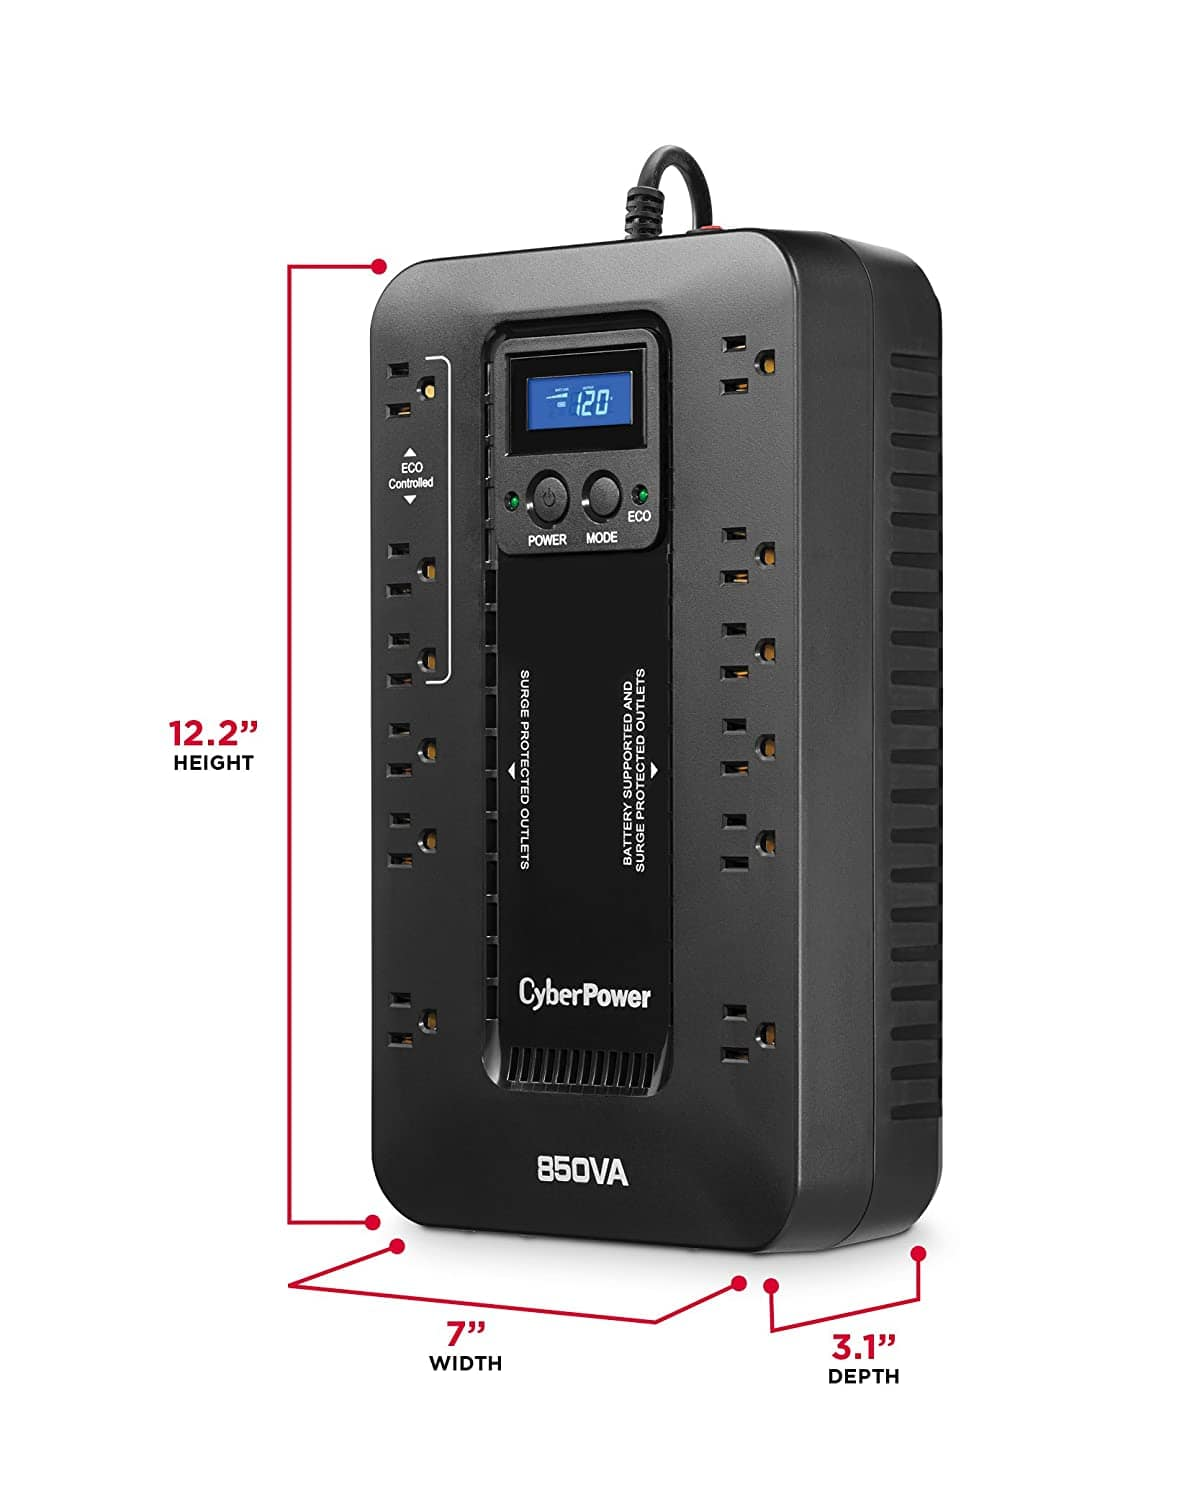 CyberPower Ecologic 12-Outlet 850VA 510W LCD UPS  @Newegg $64.99